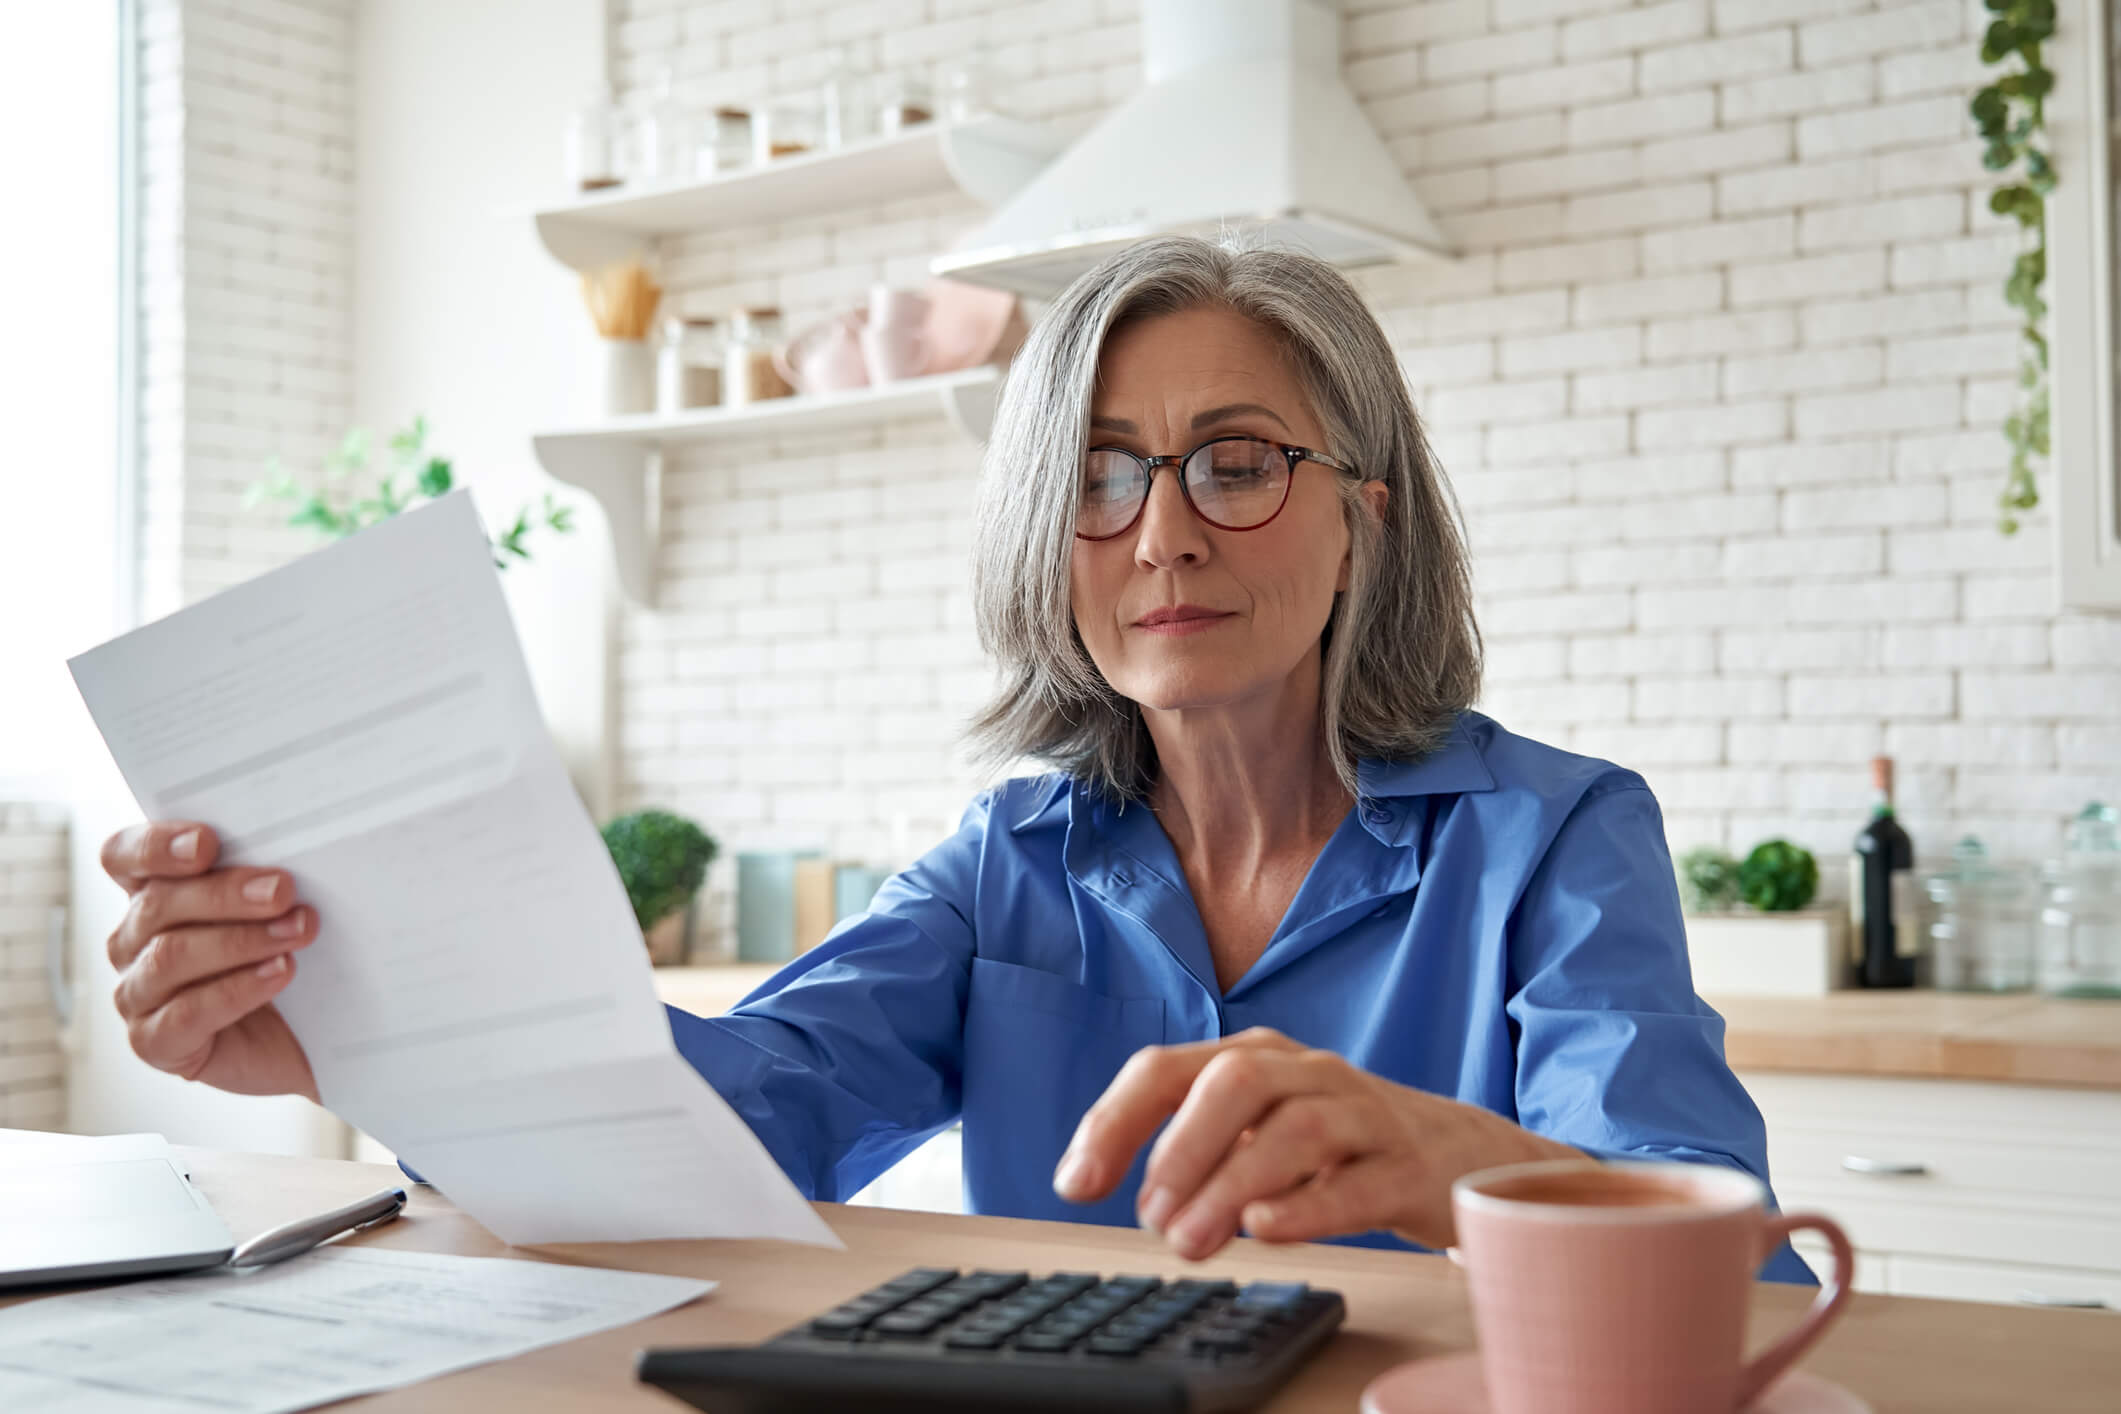 accounting software for landlords hero image: woman with grey hair and glasses sitting at kitchen table calculating payments